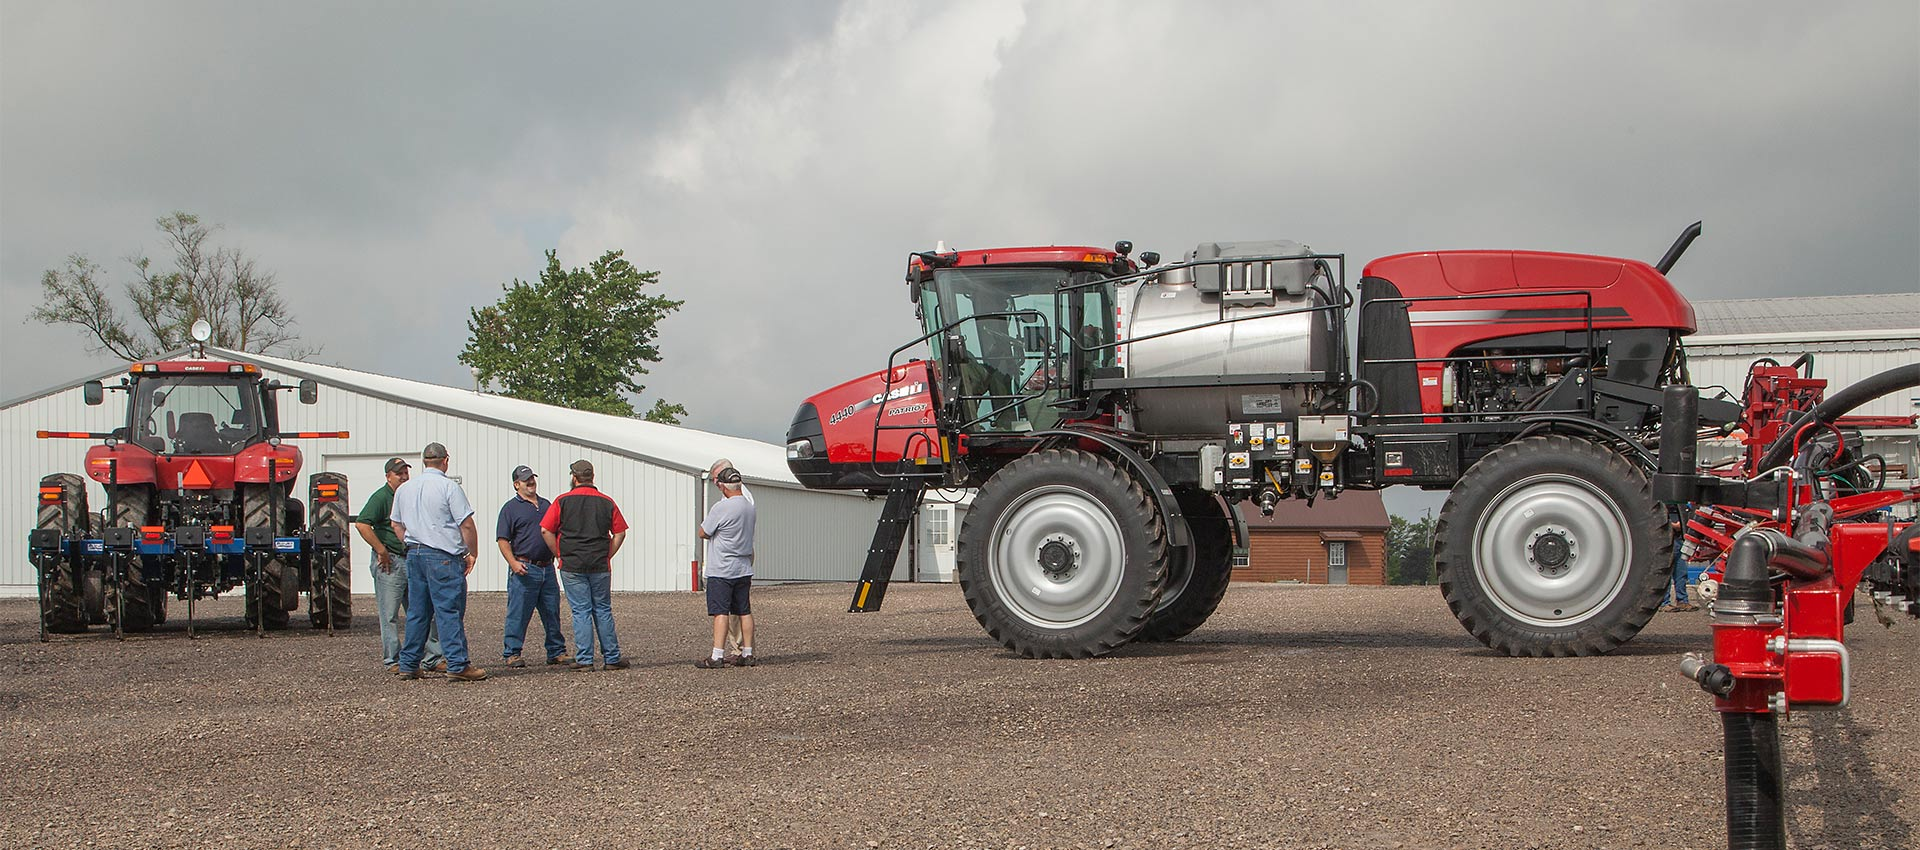 Case IH tractor and sprayer